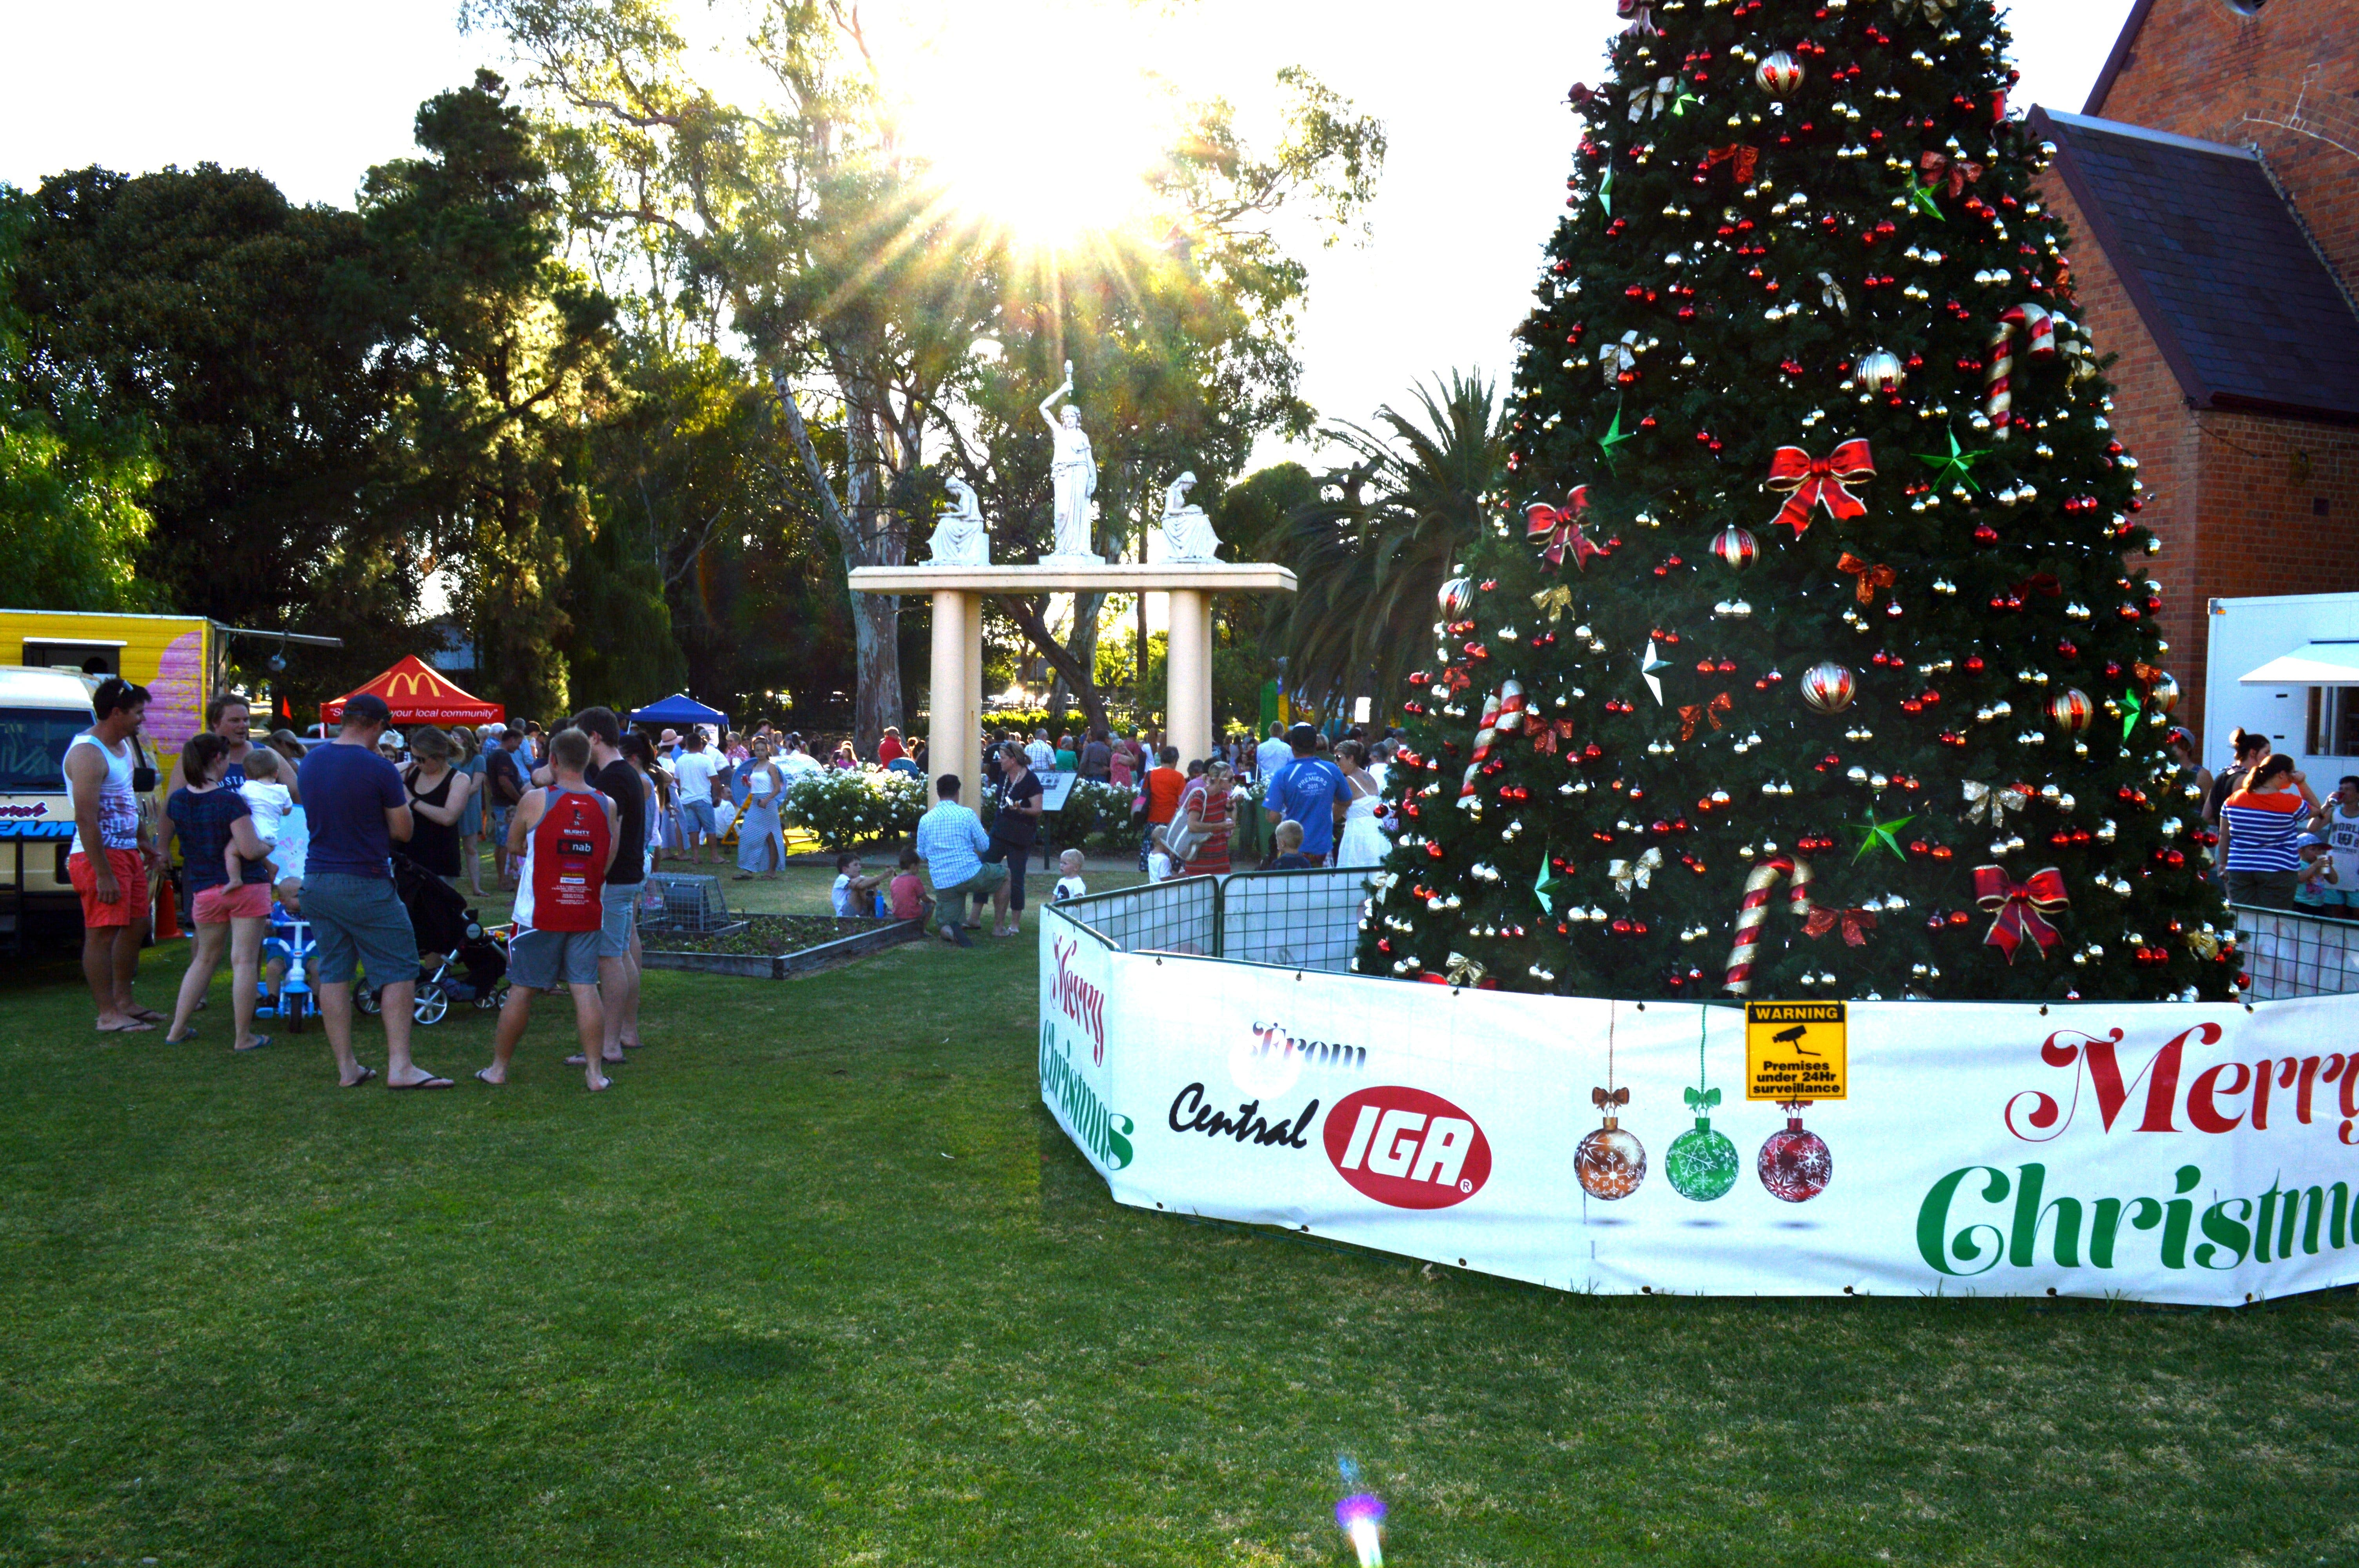 Community Christmas Party and Carols by Candlelight - Australia Accommodation